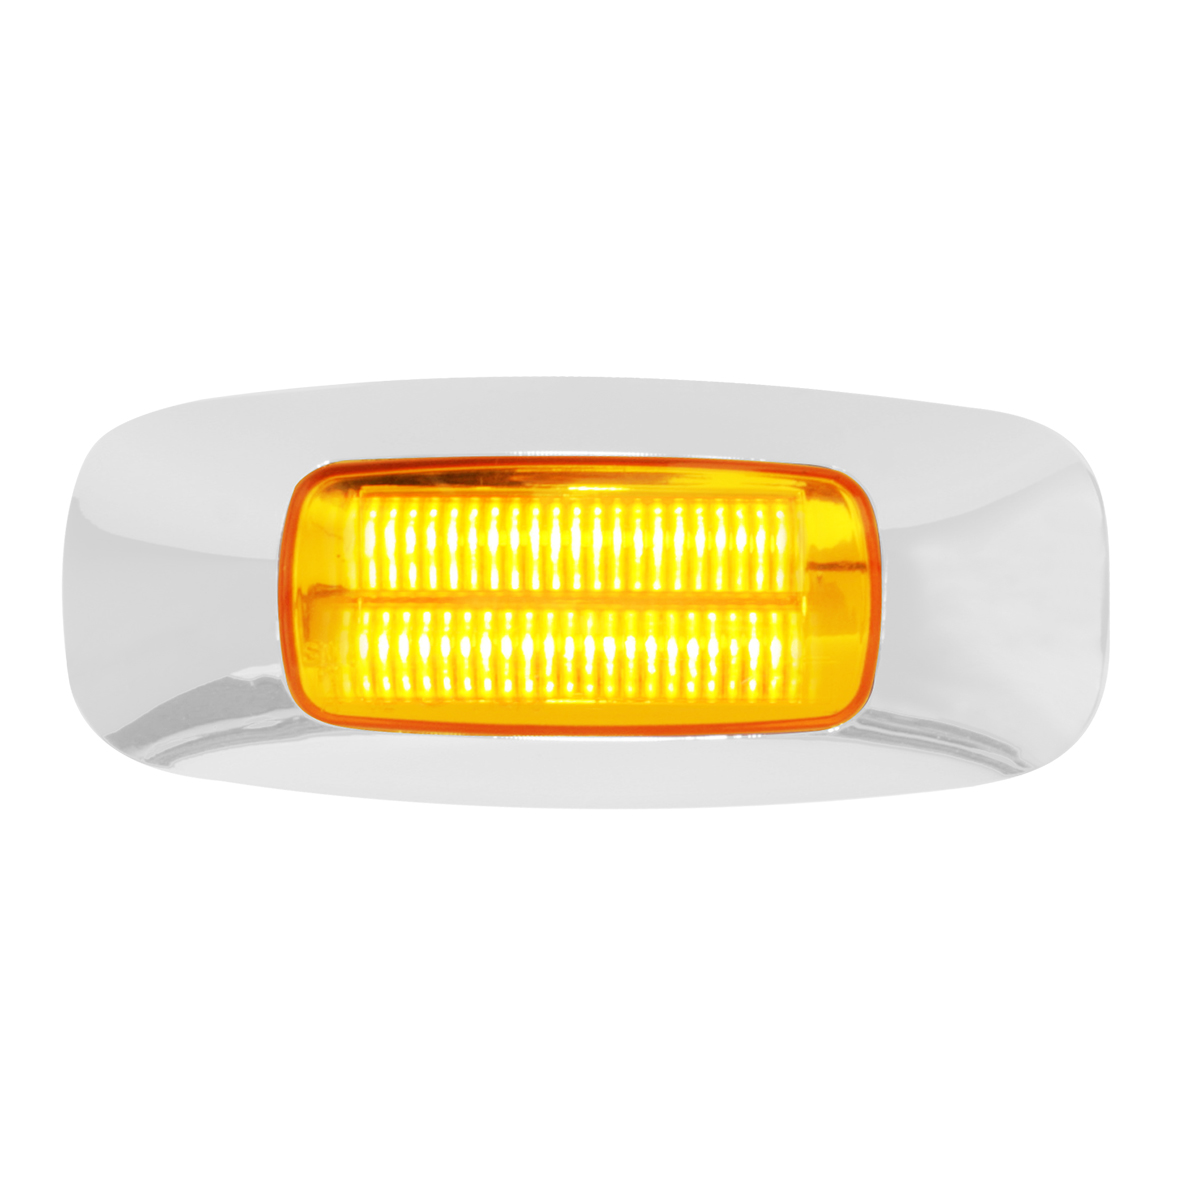 "74821 3.5"" Rectangular Prime LED Marker Light in Amber/Clear"